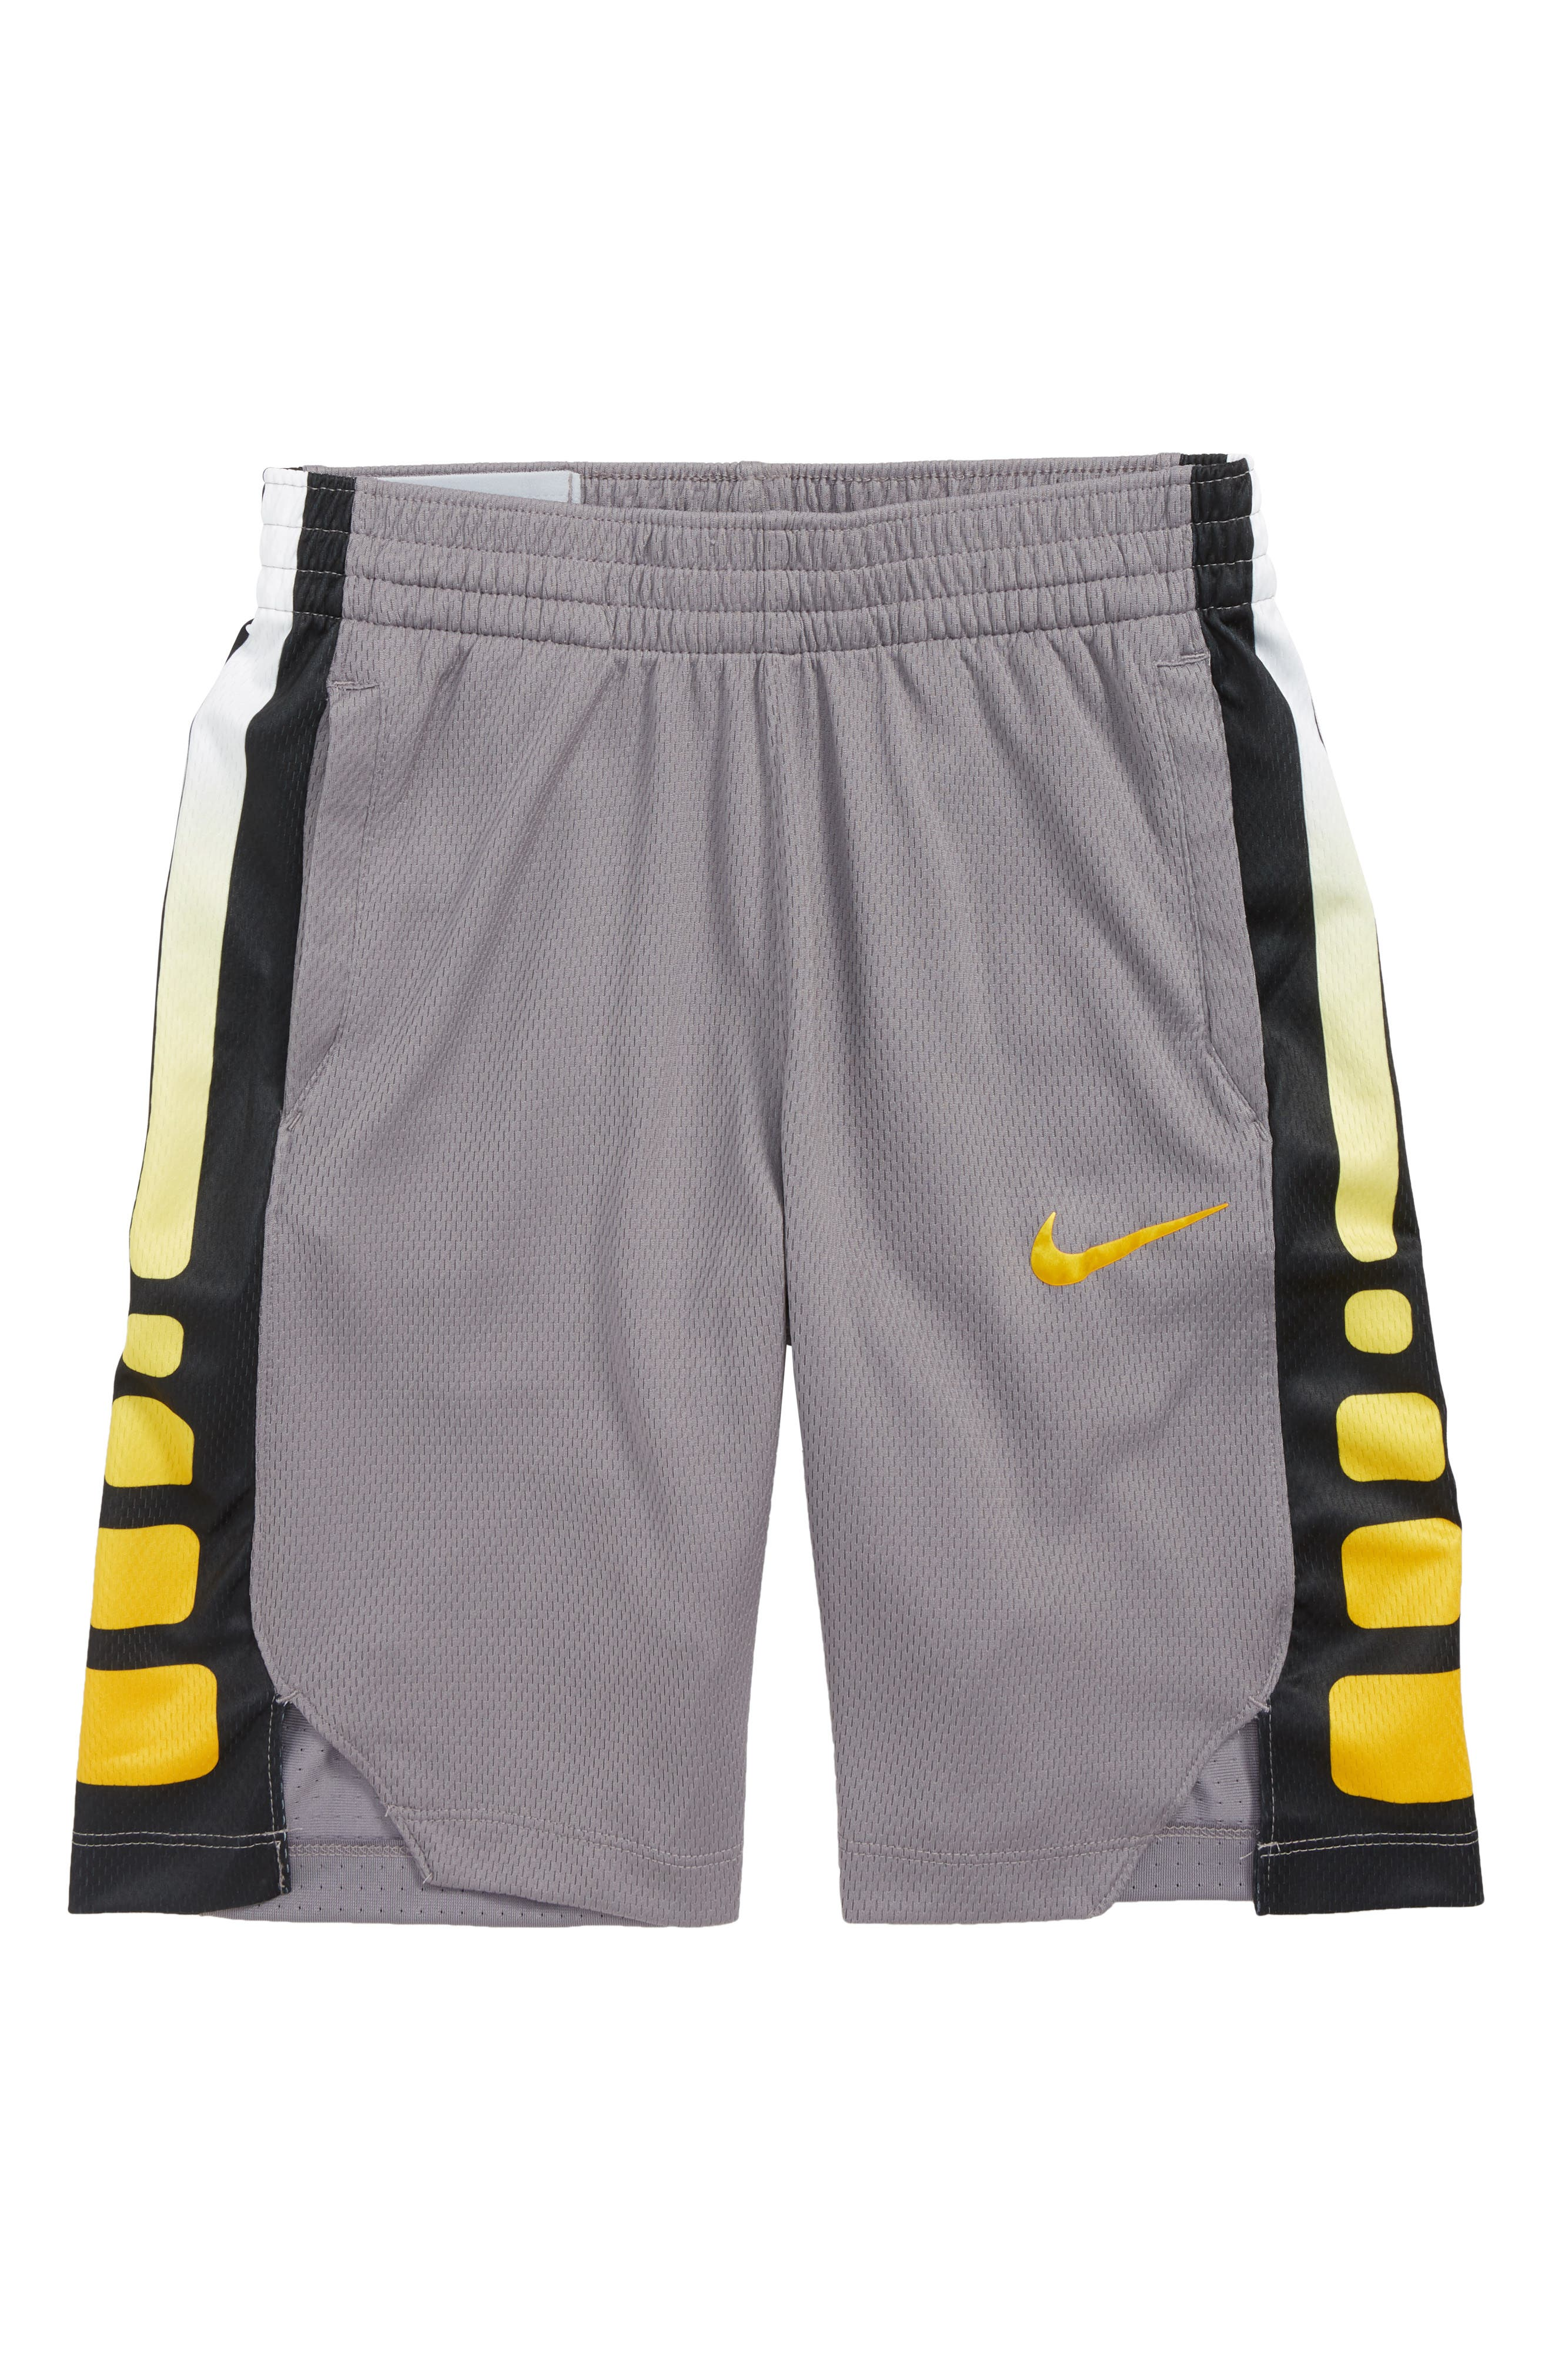 Dry Elite Basketball Shorts,                             Main thumbnail 5, color,